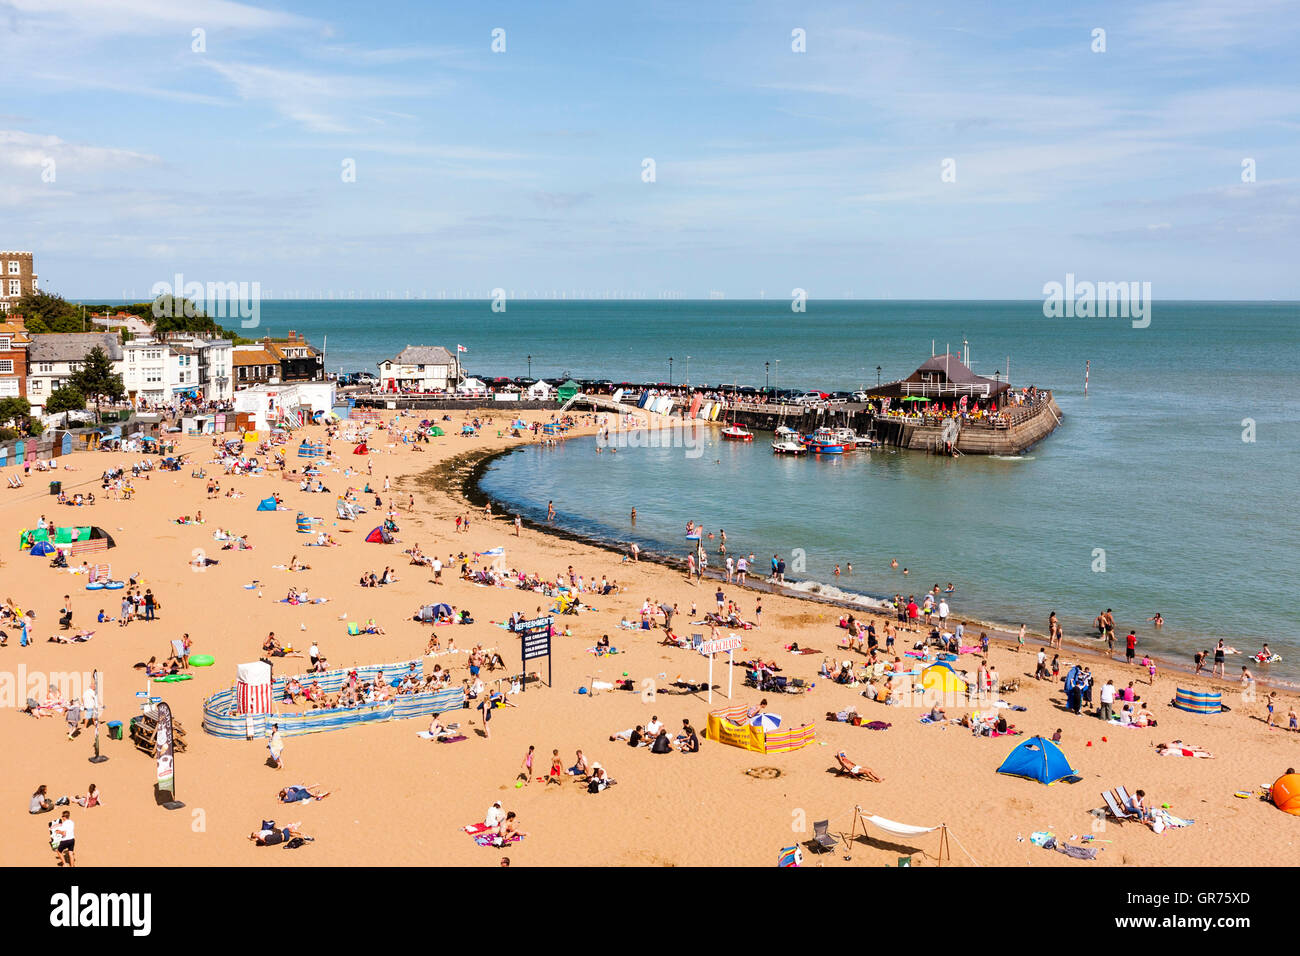 Broadstairs resort town in UK, the main beach with small harbour at one end. Hot summer day with lots of people - Stock Image